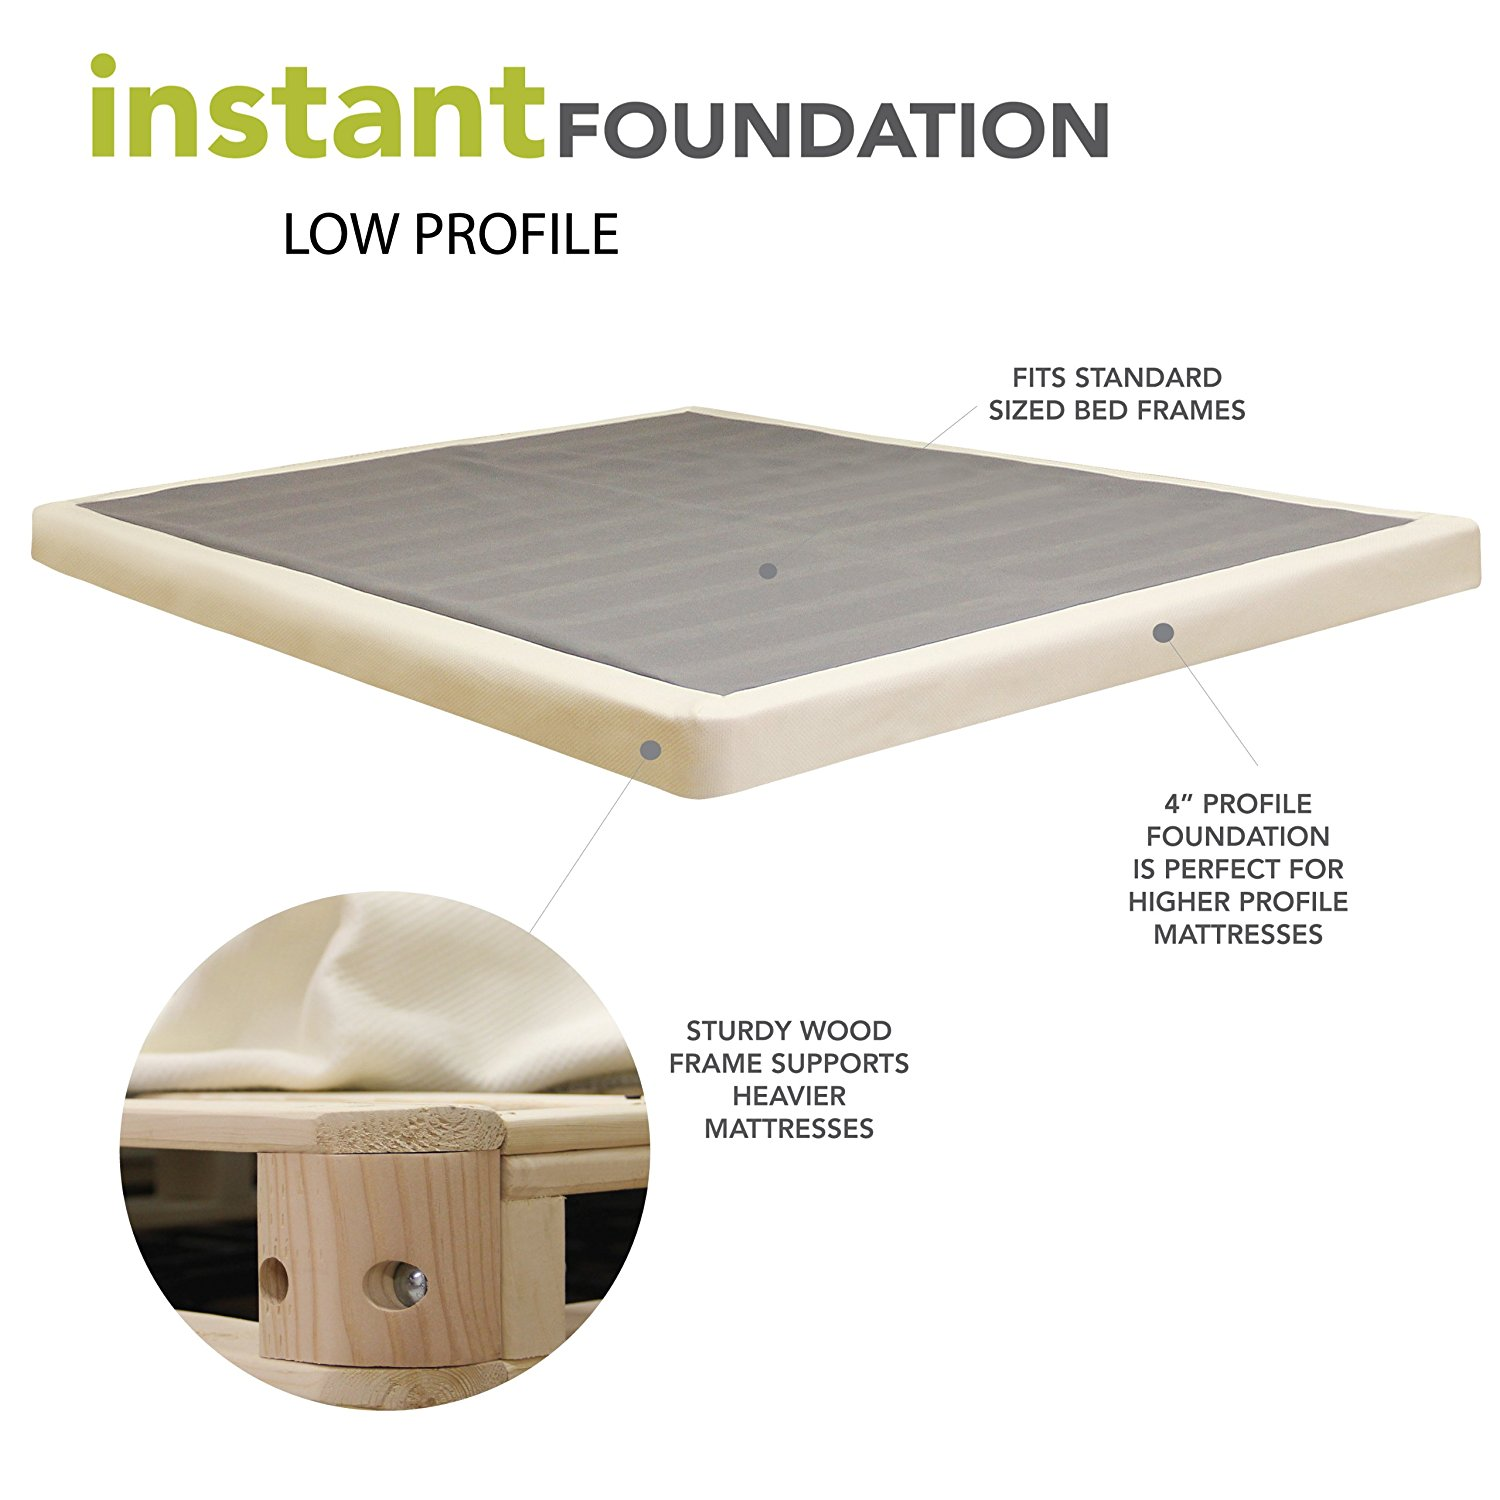 Classic Brands 4 Inch Instant Foundation Low Profile Foundation or Box Spring Replacement, Cal King